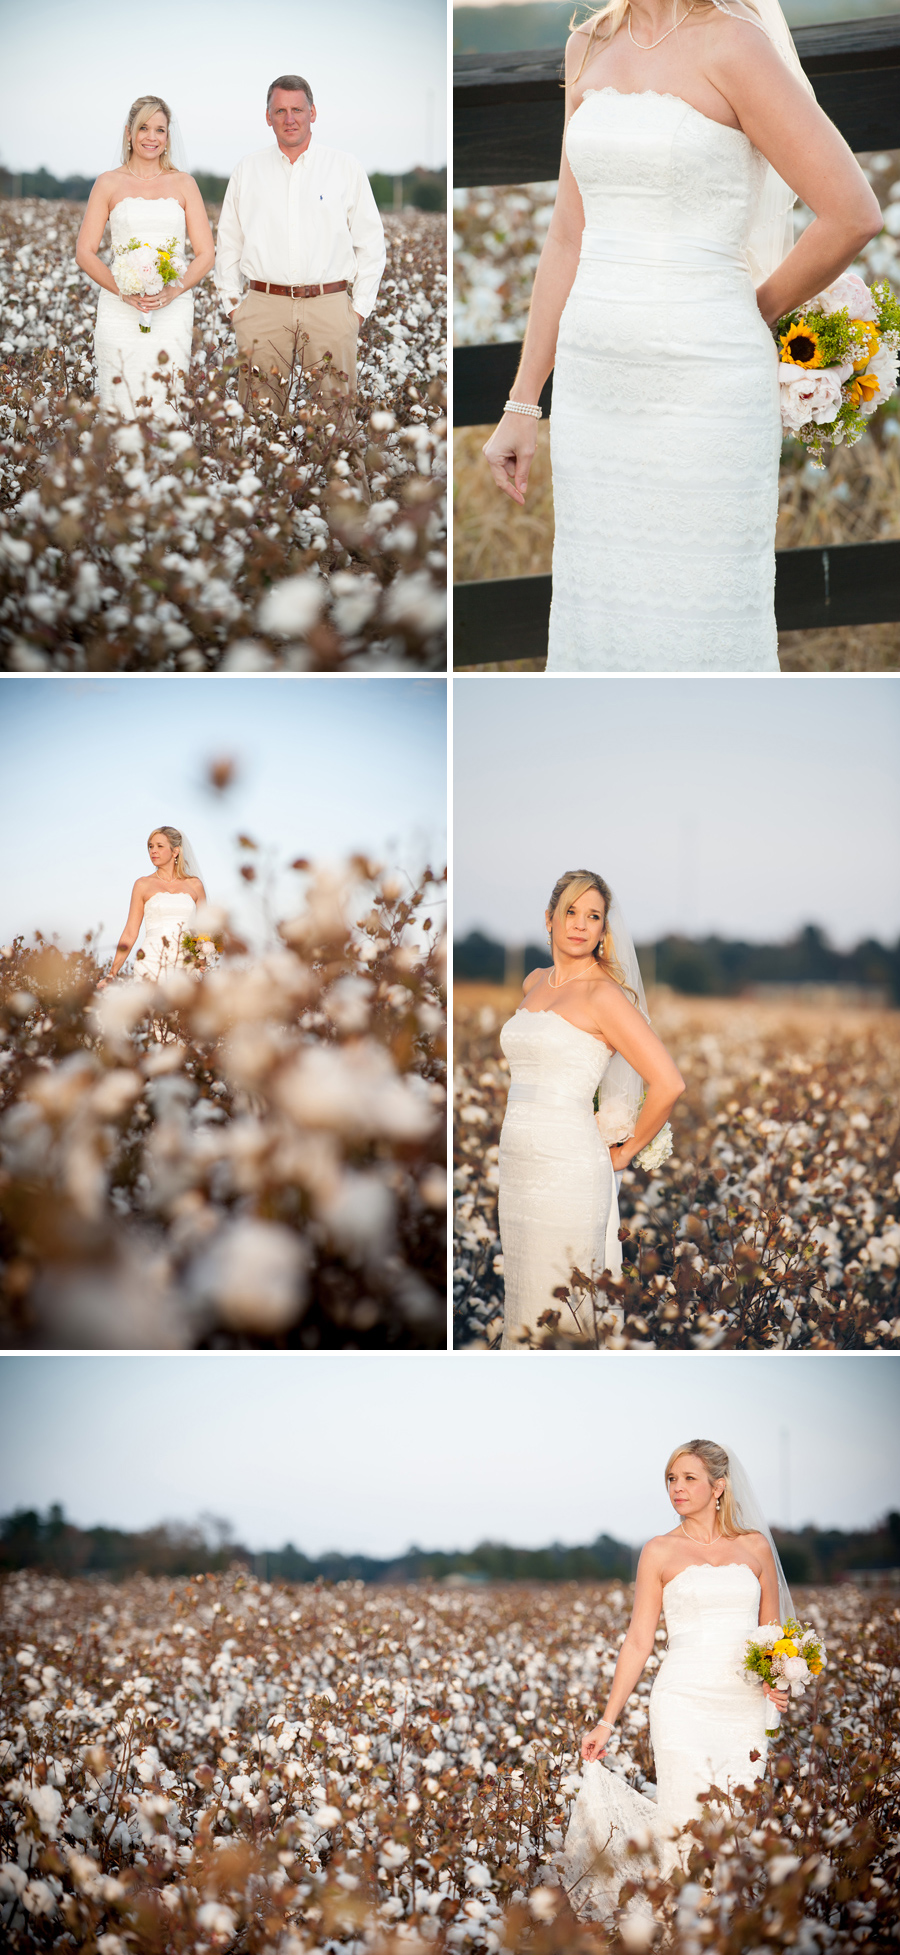 Angie and Jim bridals in St. Matthew, SC